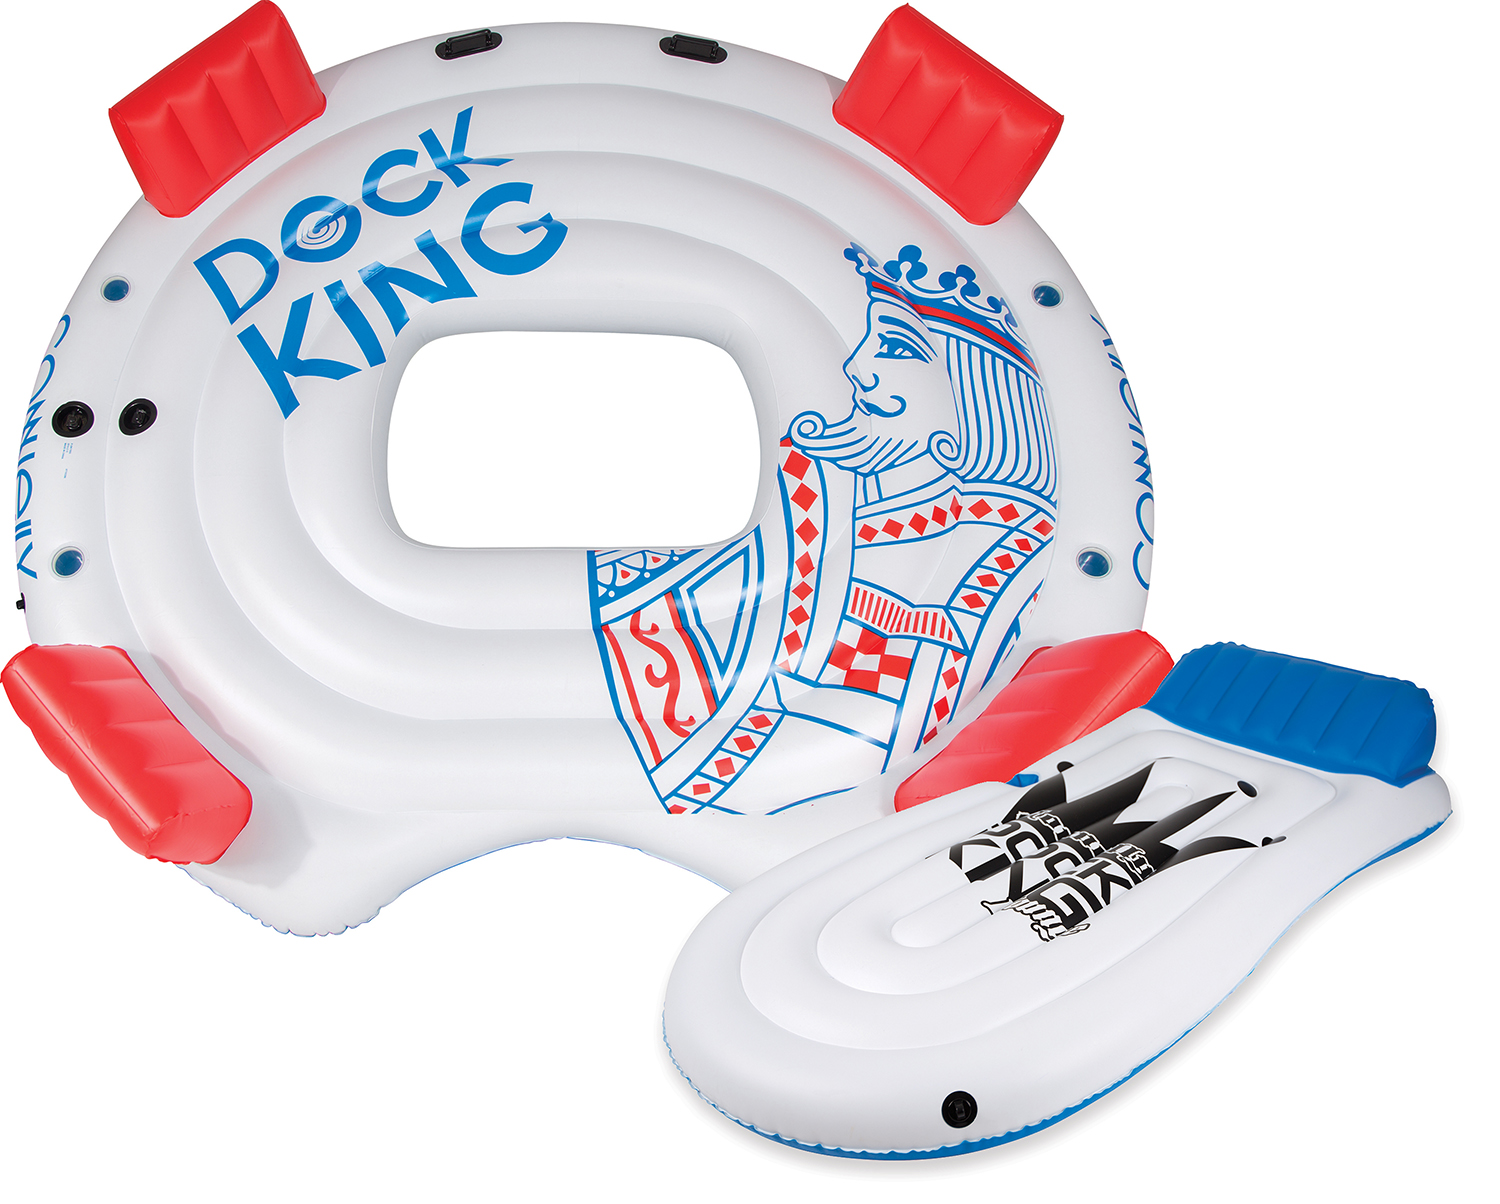 DOCK KING PACKAGE (W/LOUNGE) LOUNGE TUBE CONNELLY 2017